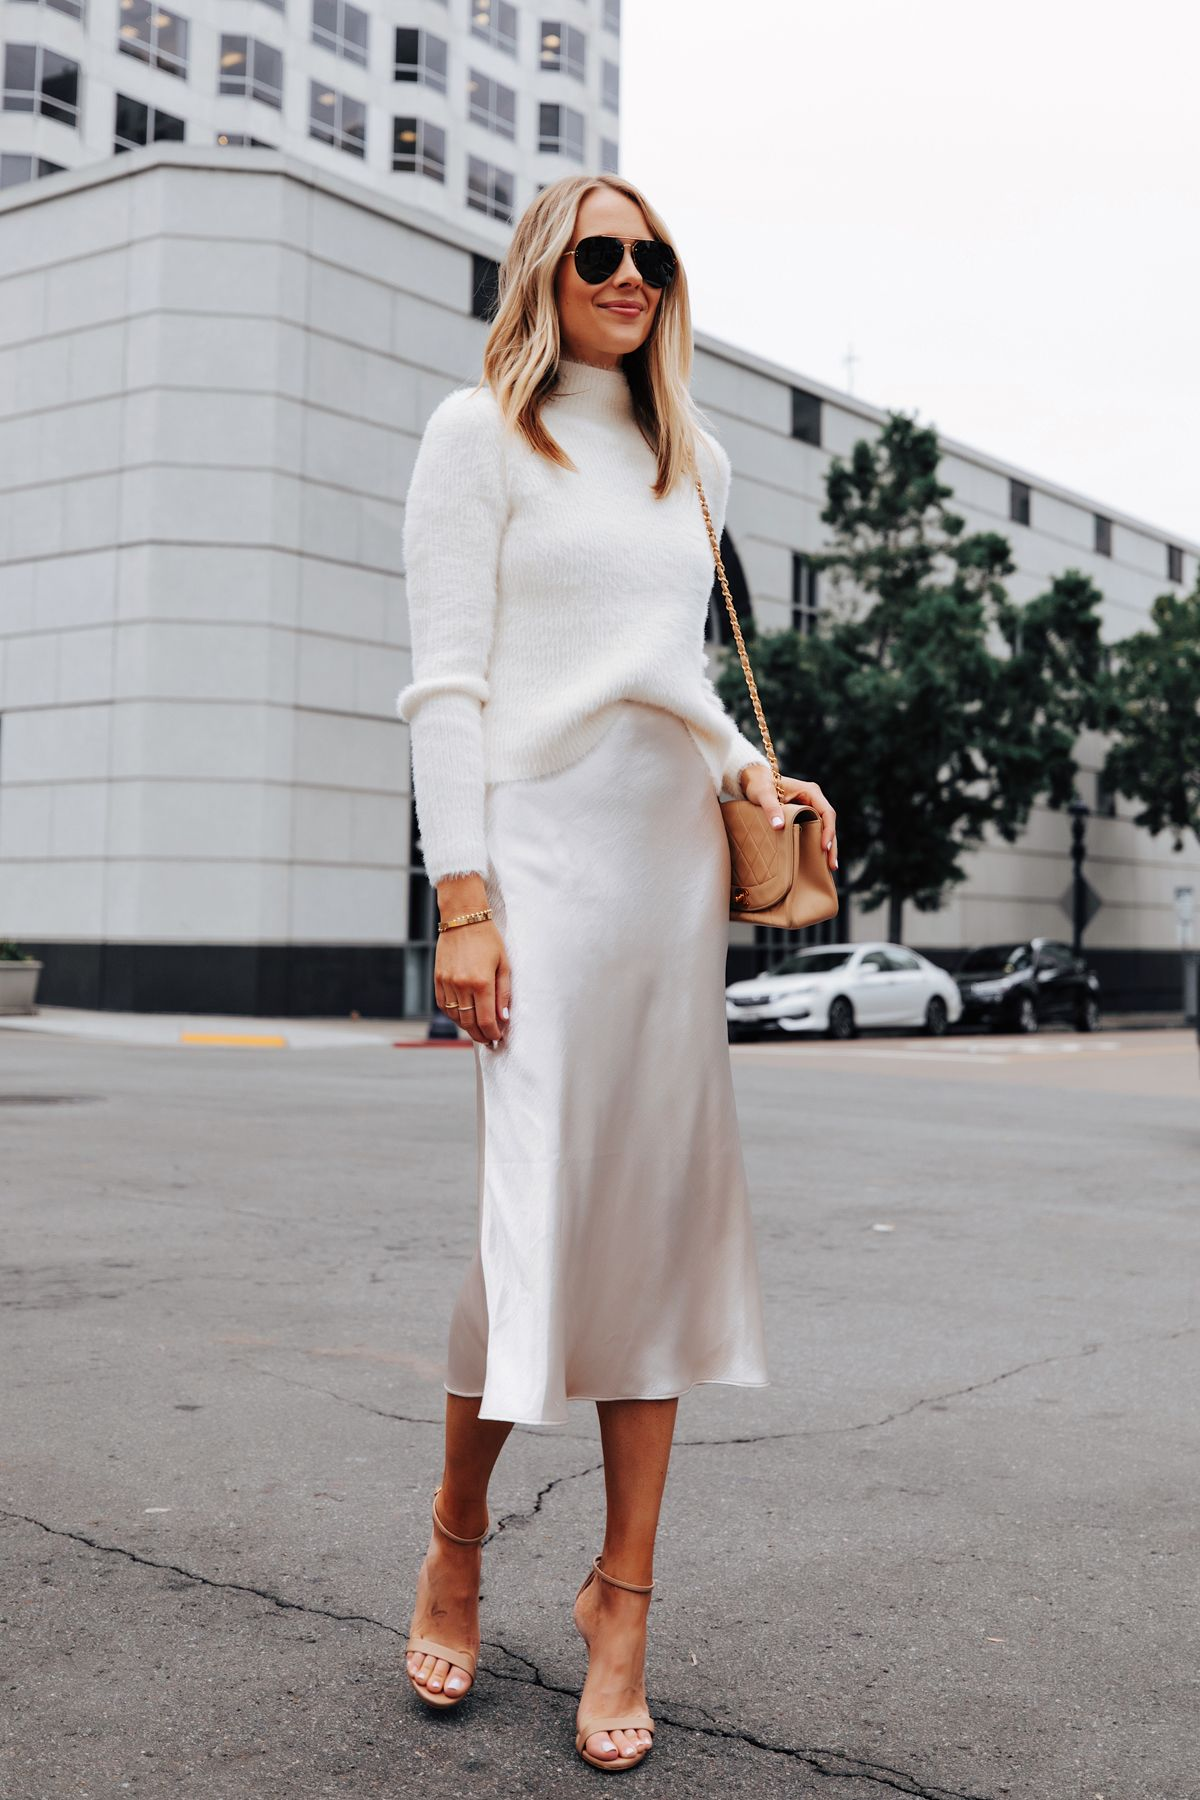 Winter White Outfit Idea For a Casual Holiday Party | Fashion Jackson